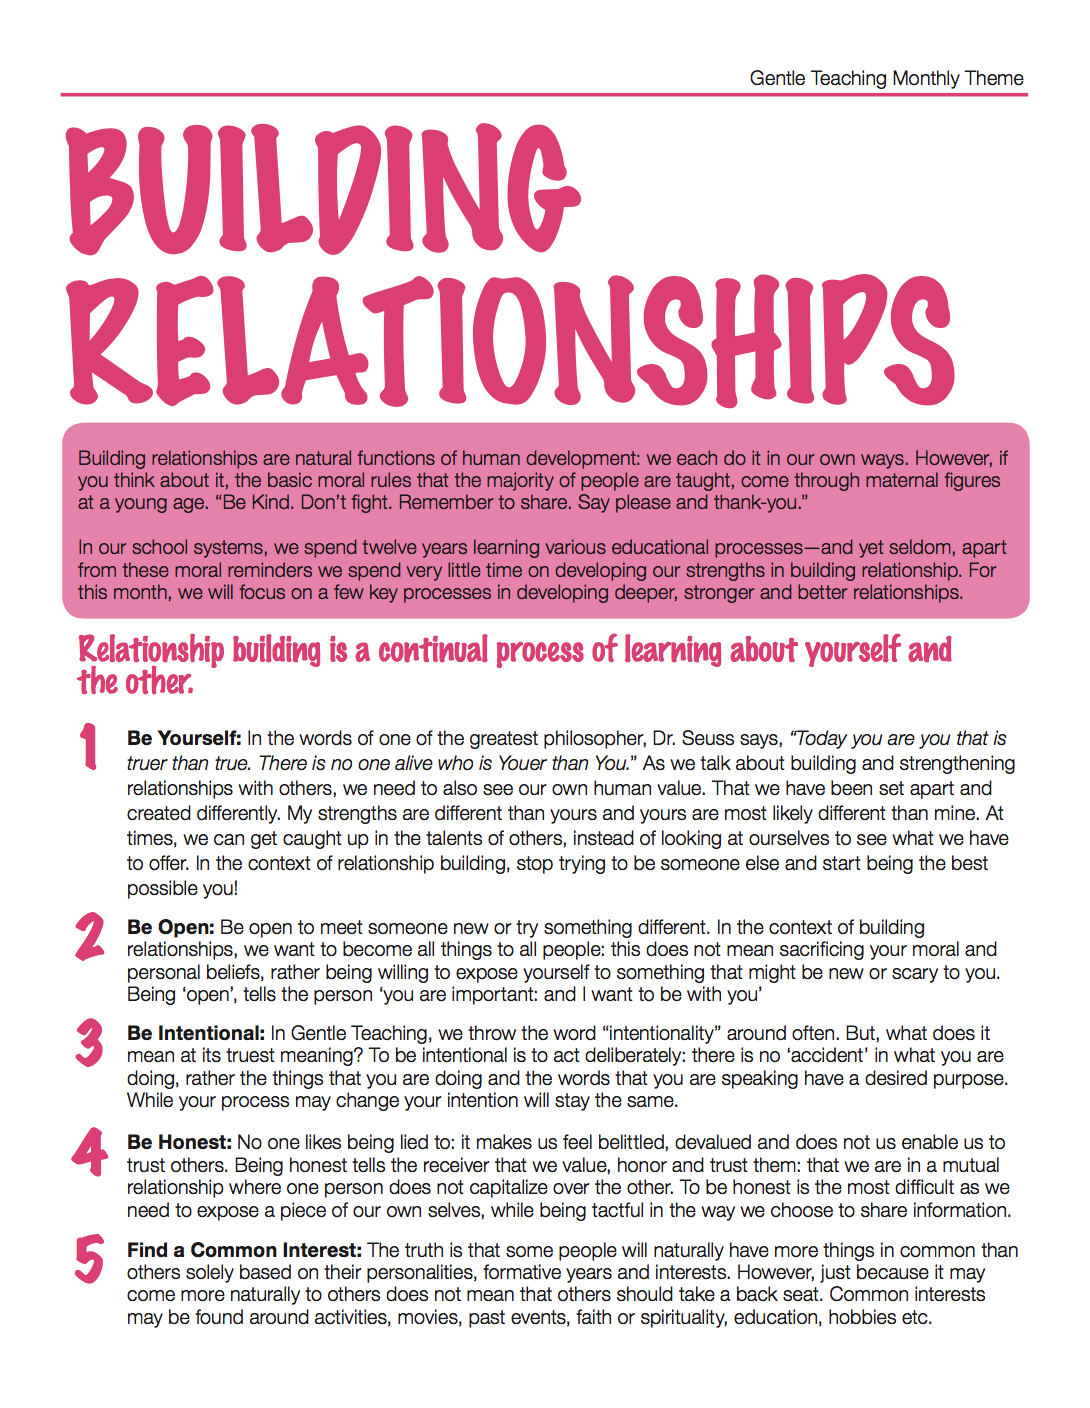 Gentle Teaching Theme: Building Relationships